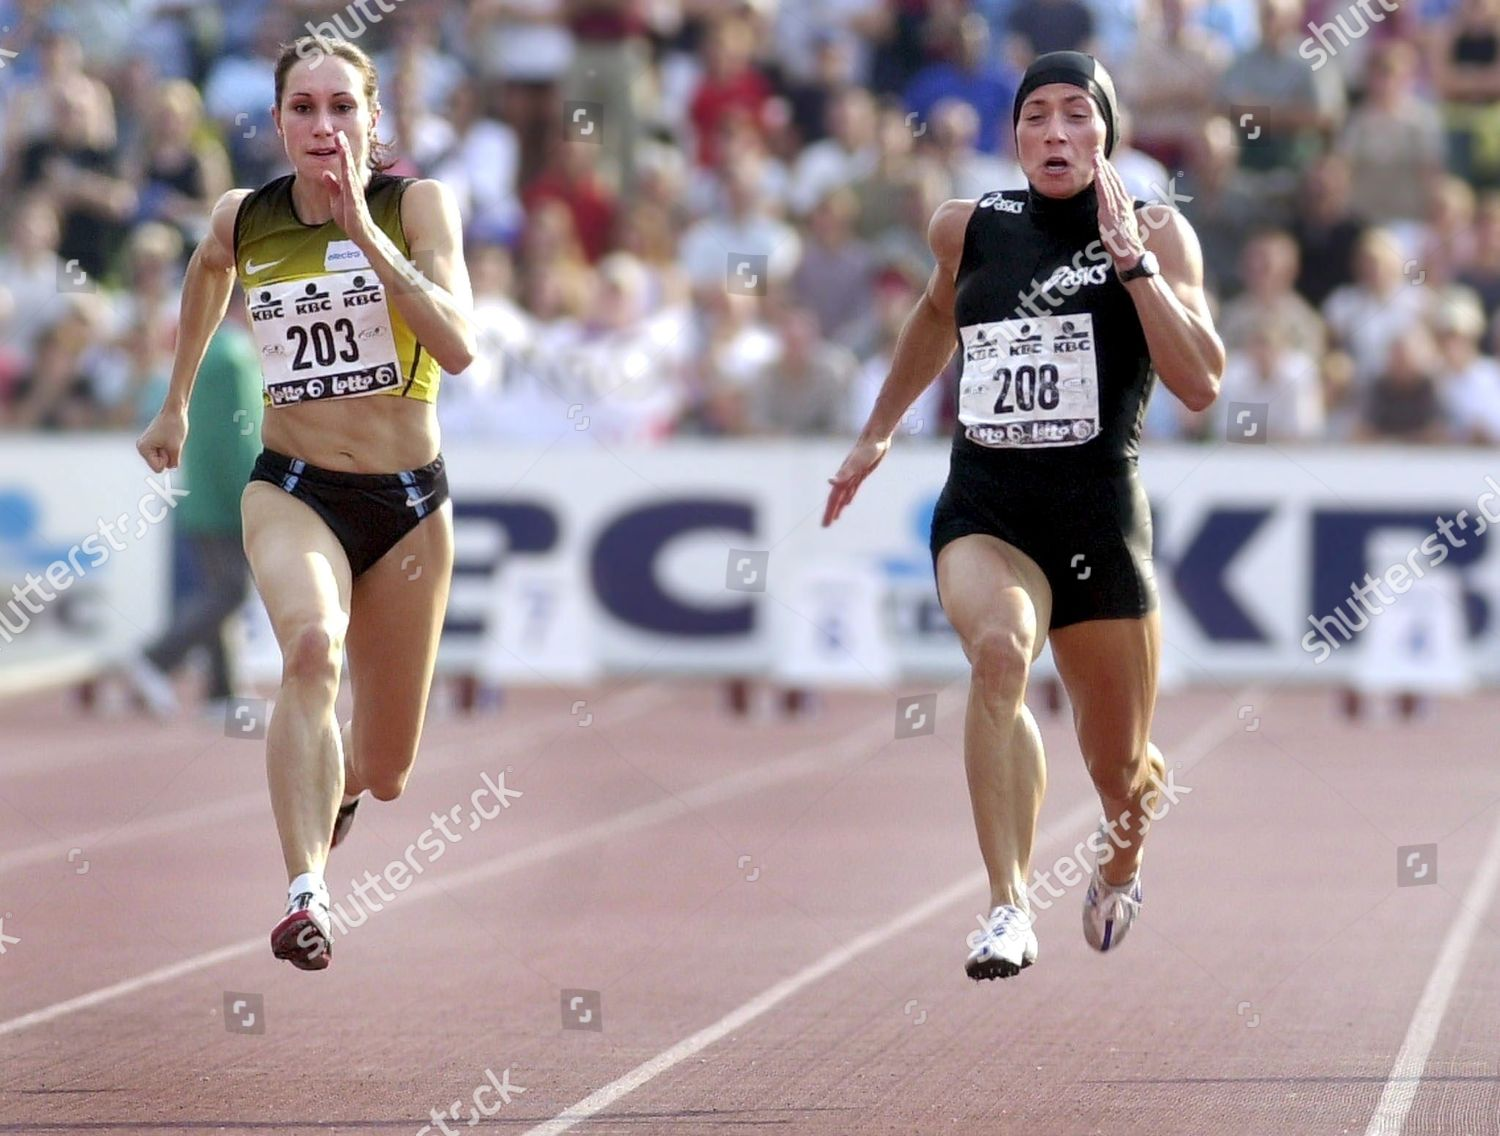 Kim Gevaert sprint runner naked (77 photos), Sexy, Bikini, Boobs, braless 2006